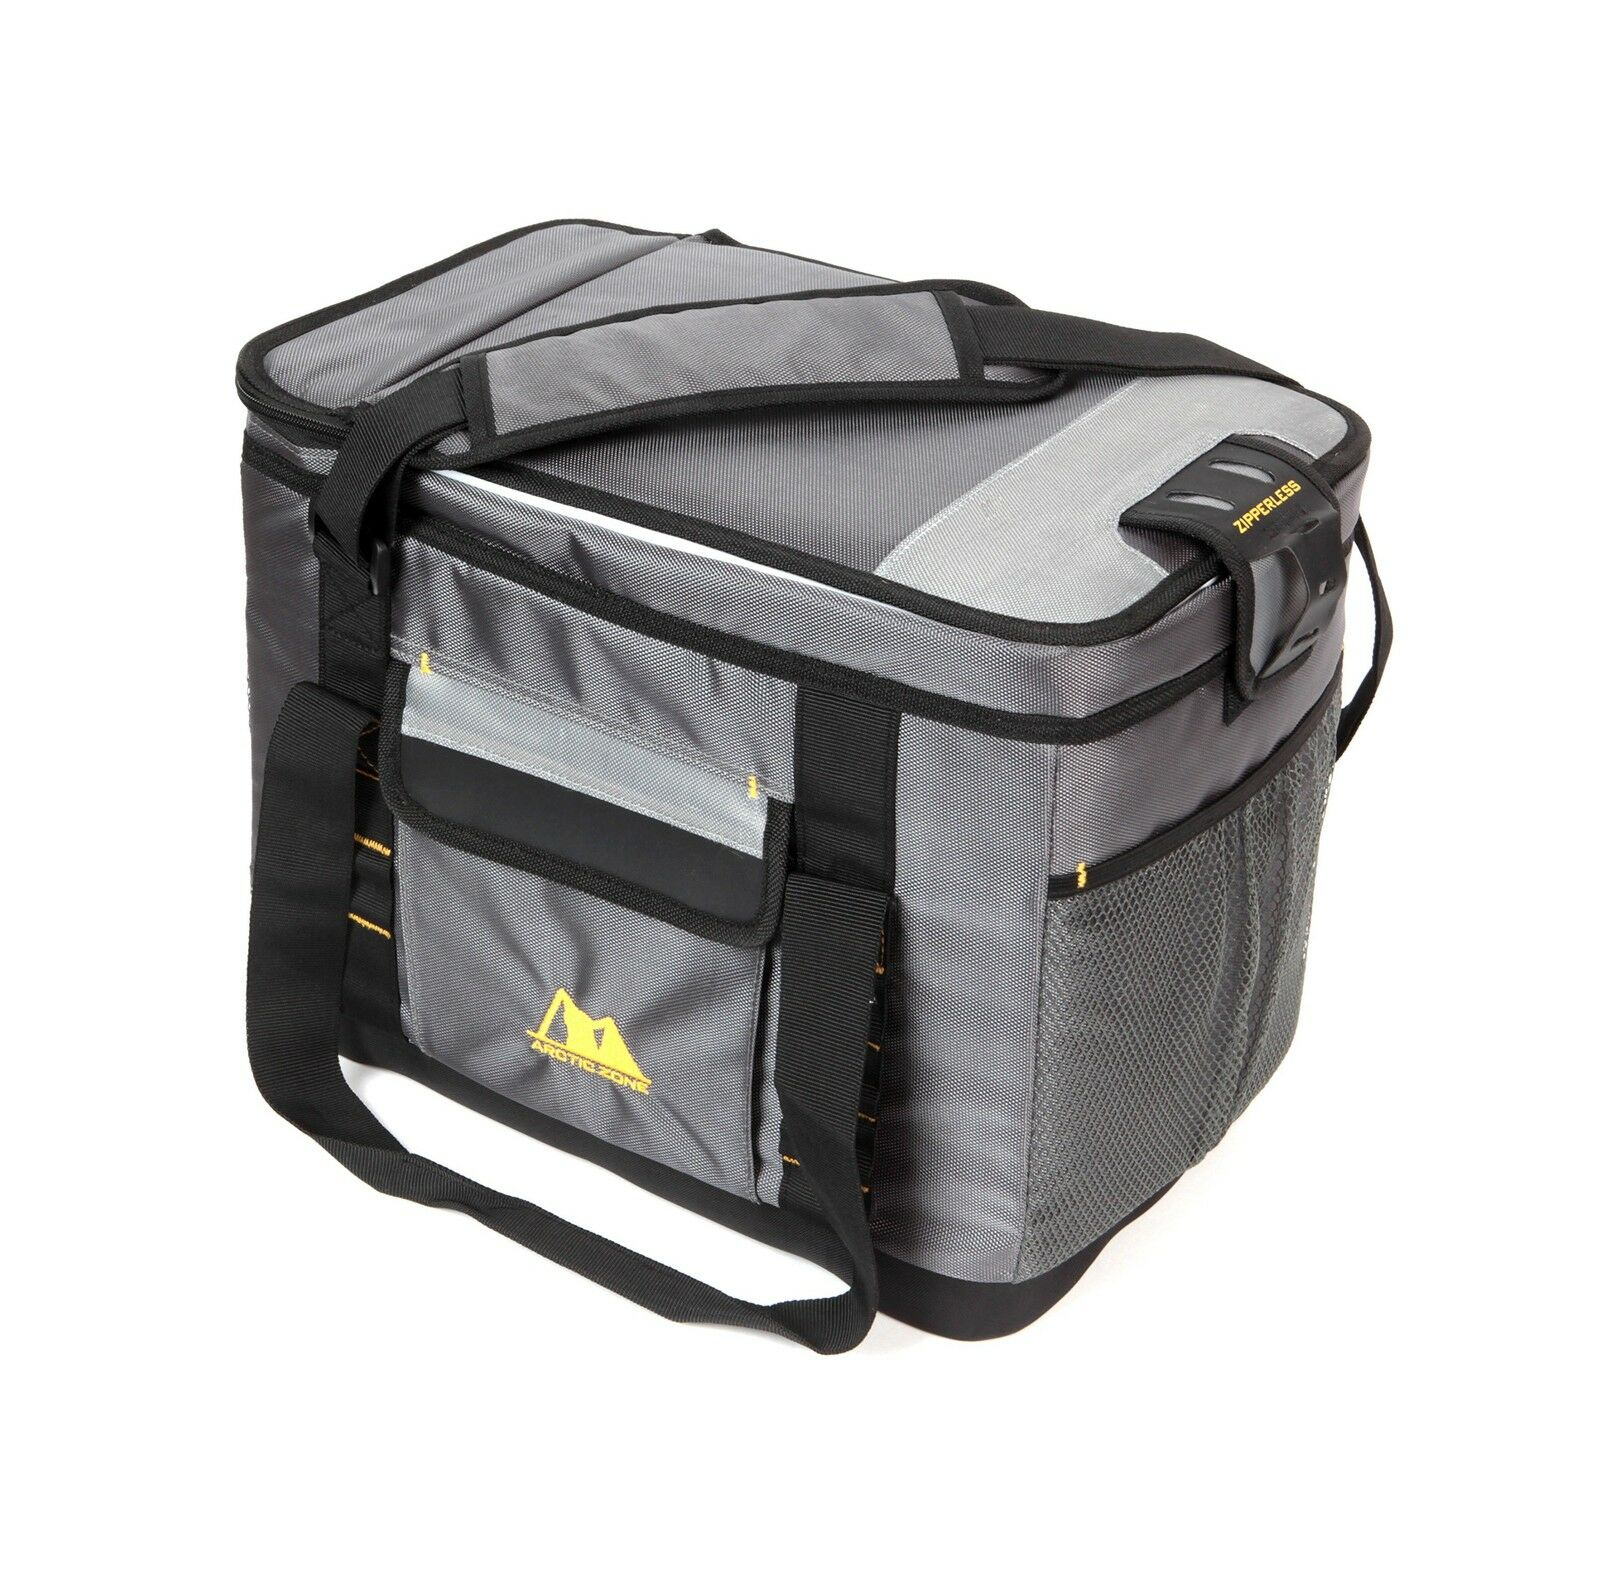 Arctic Zone Pro 30 (24+6) Can Zipperless Cooler Free Shipping